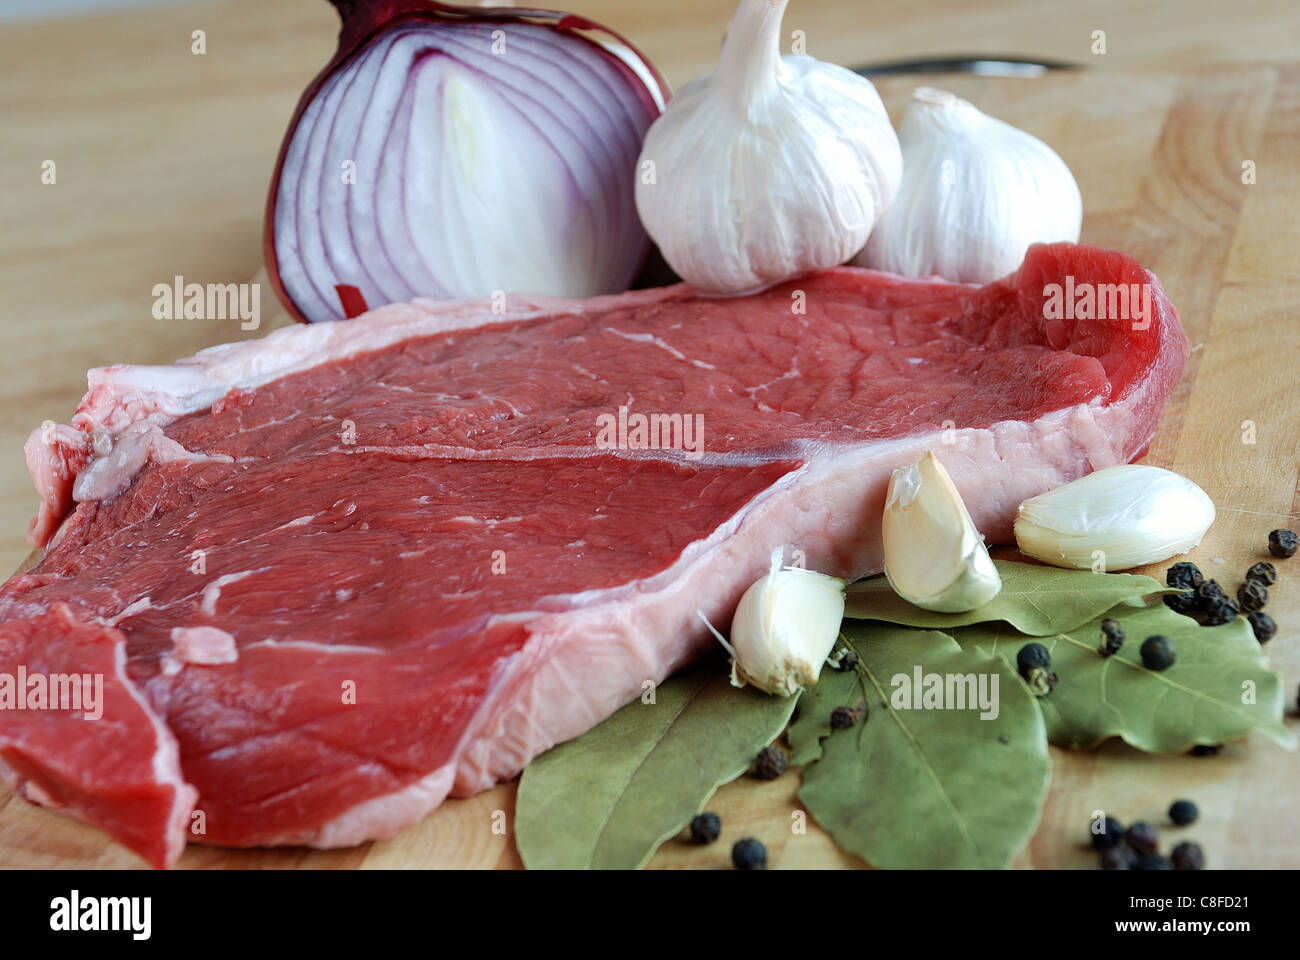 Rohes Rindfleischsteak Stockbild